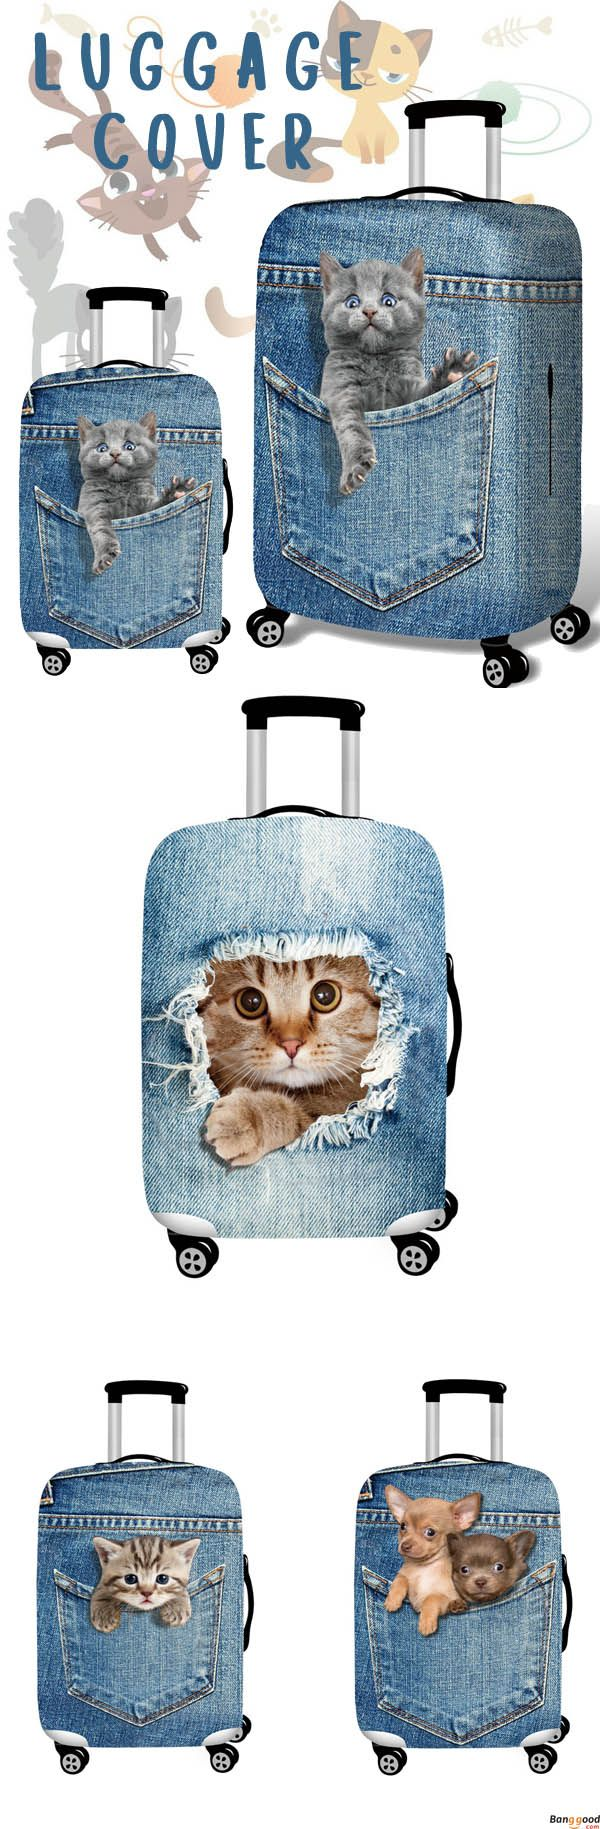 US$15.99+ Free Shipping. 3D Cute Cat Dog Elastic Luggage Cover. Shop at banggood.